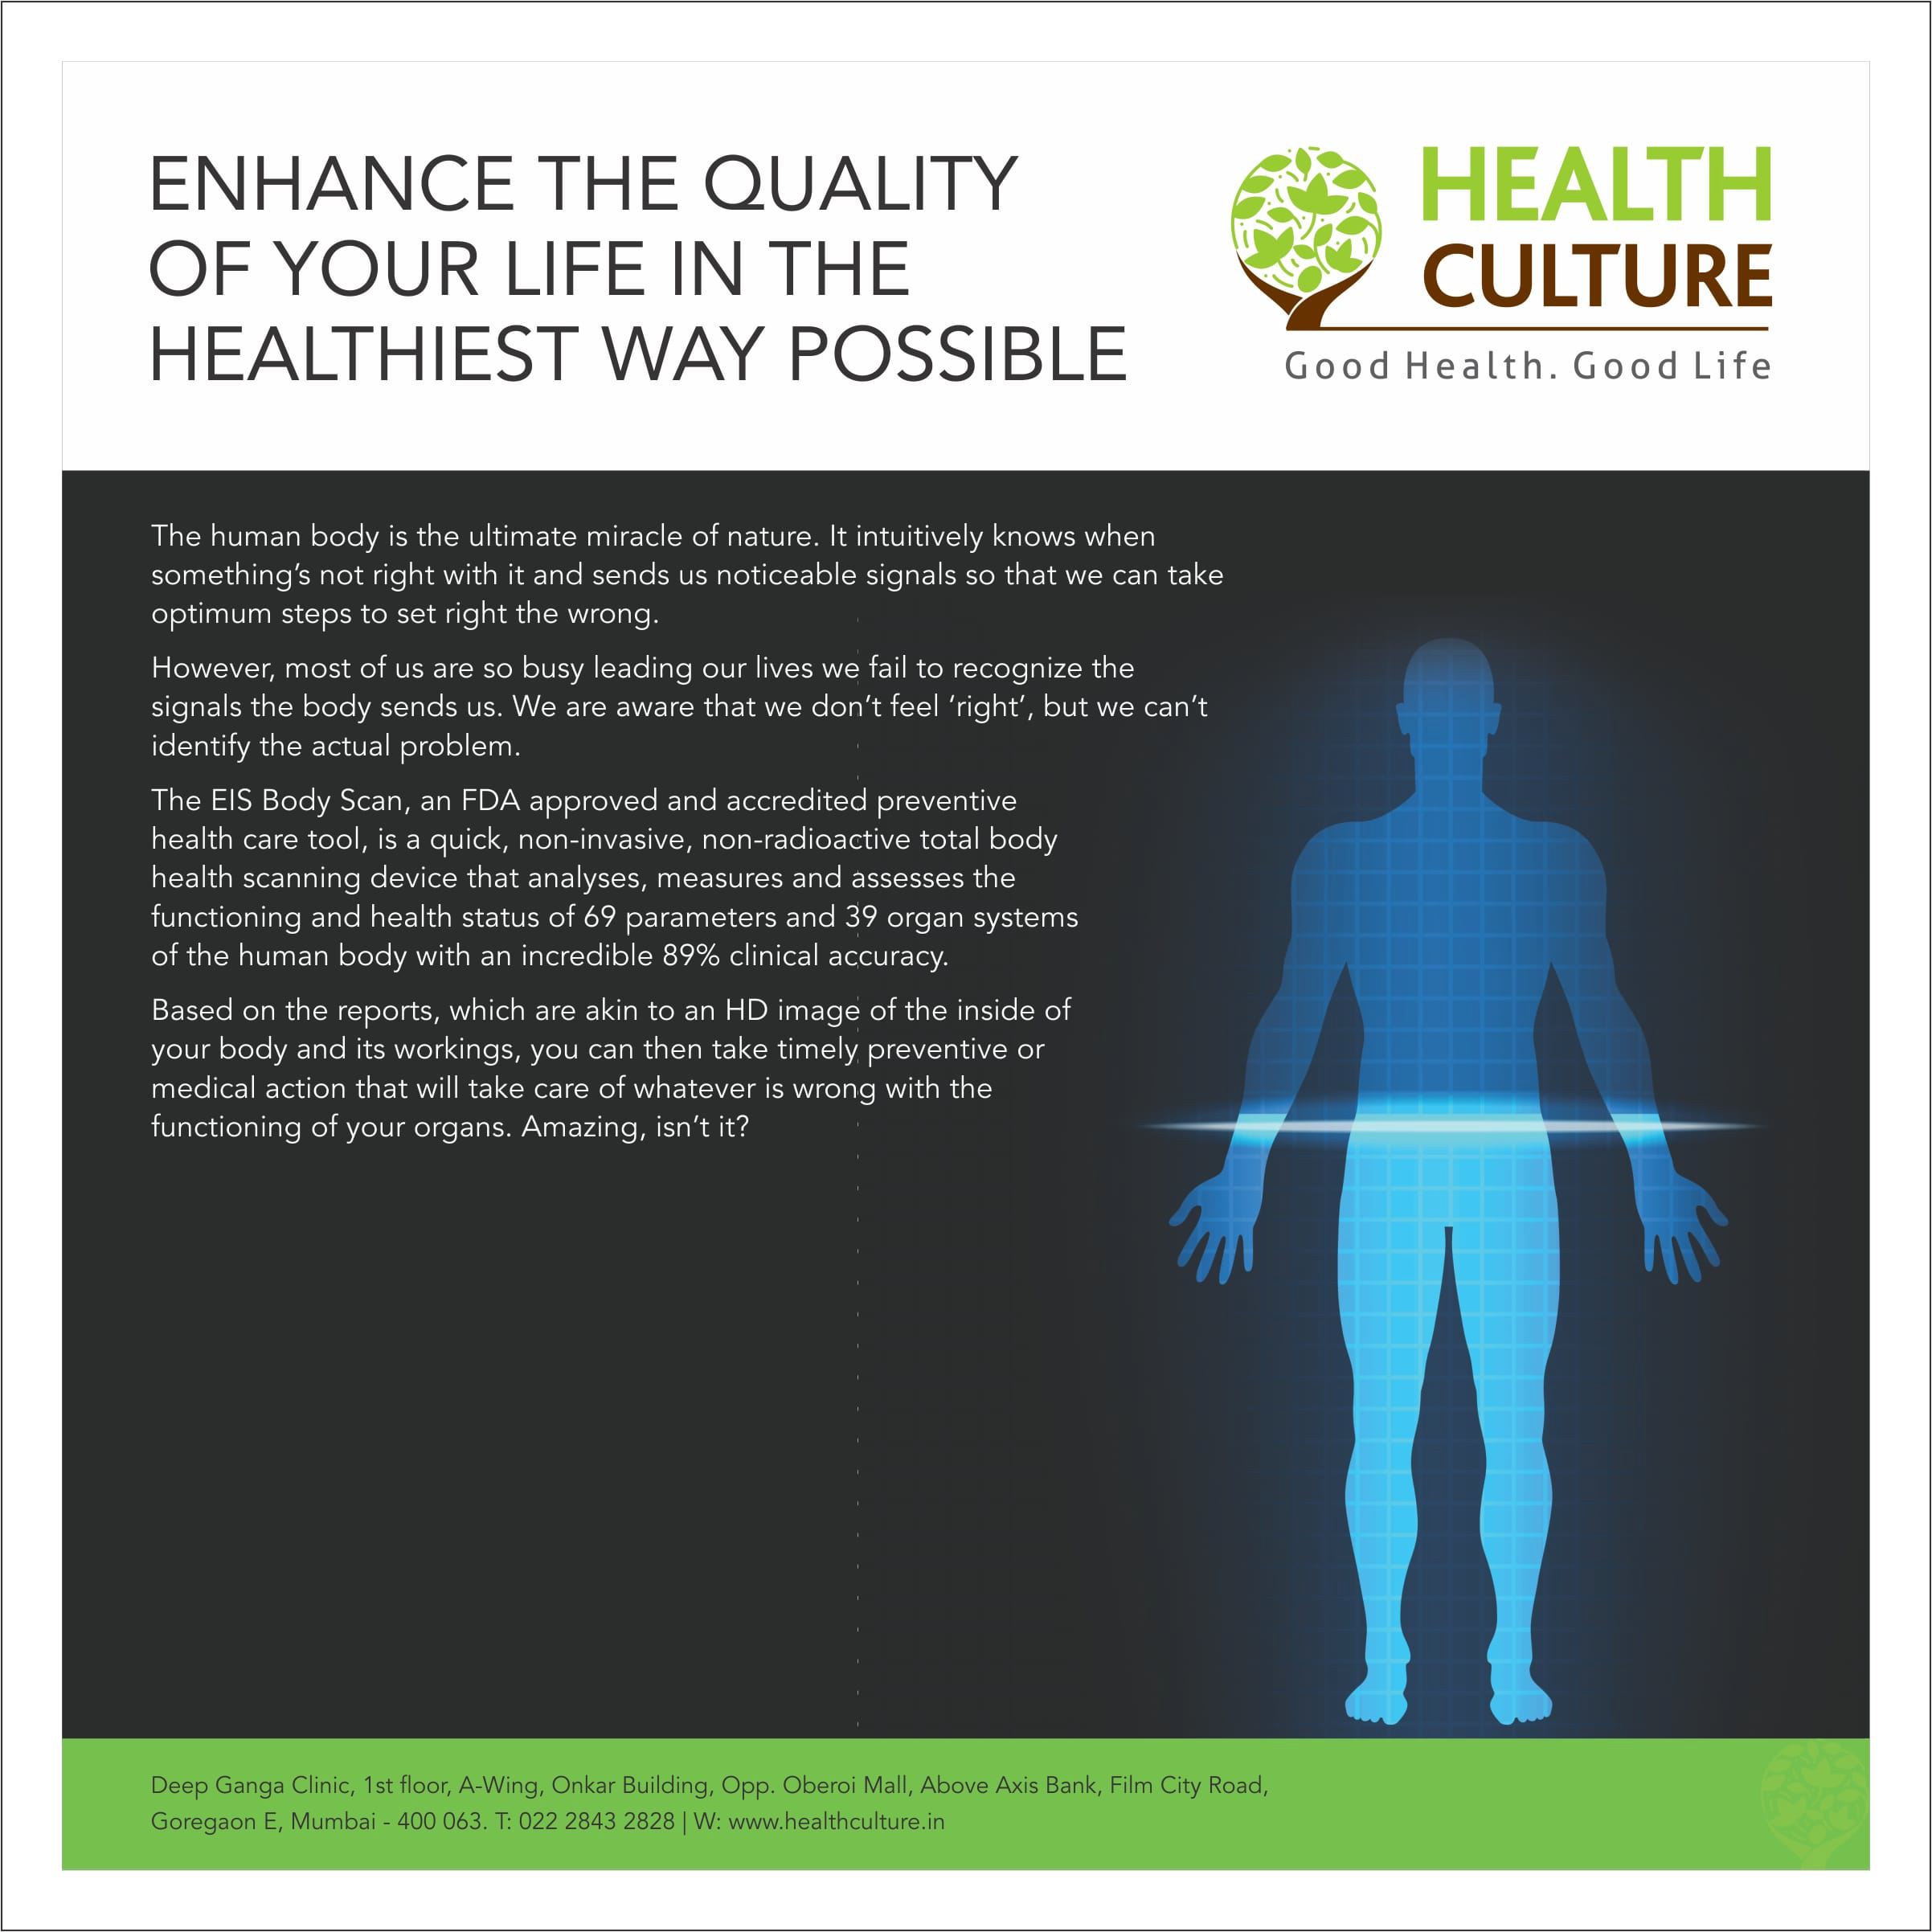 Enhance the Quality of life - Health Culture